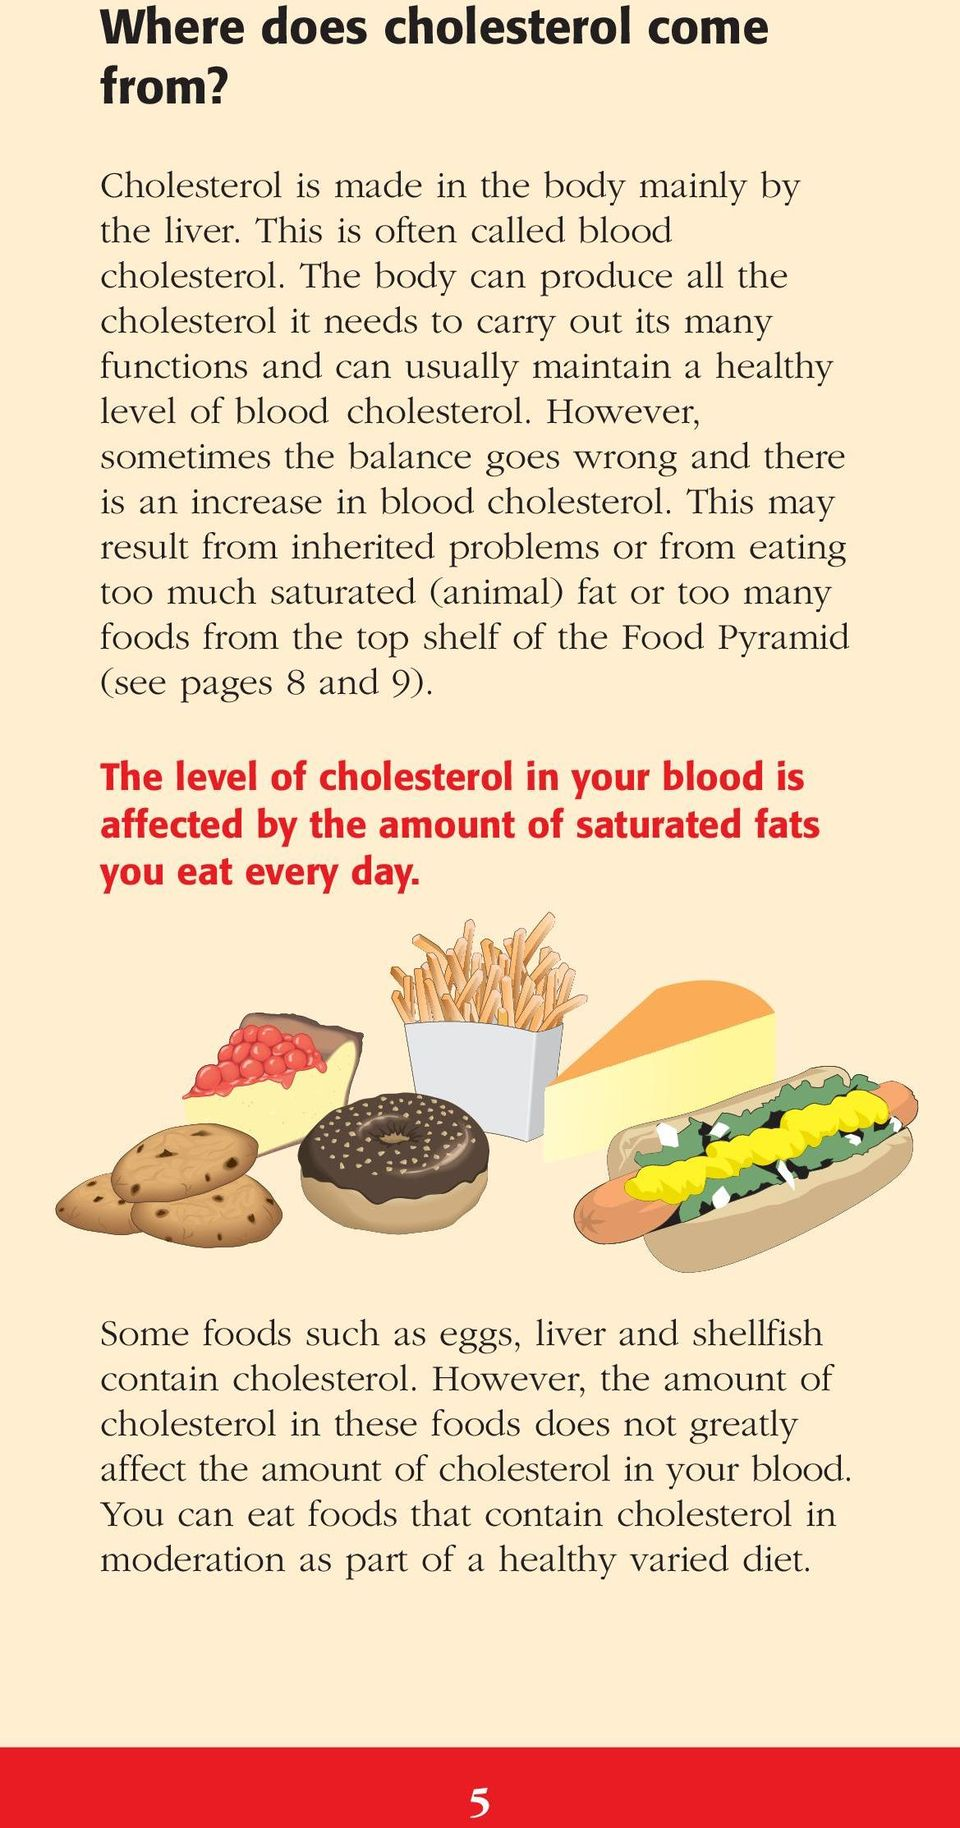 However, sometimes the balance goes wrong and there is an increase in blood cholesterol.